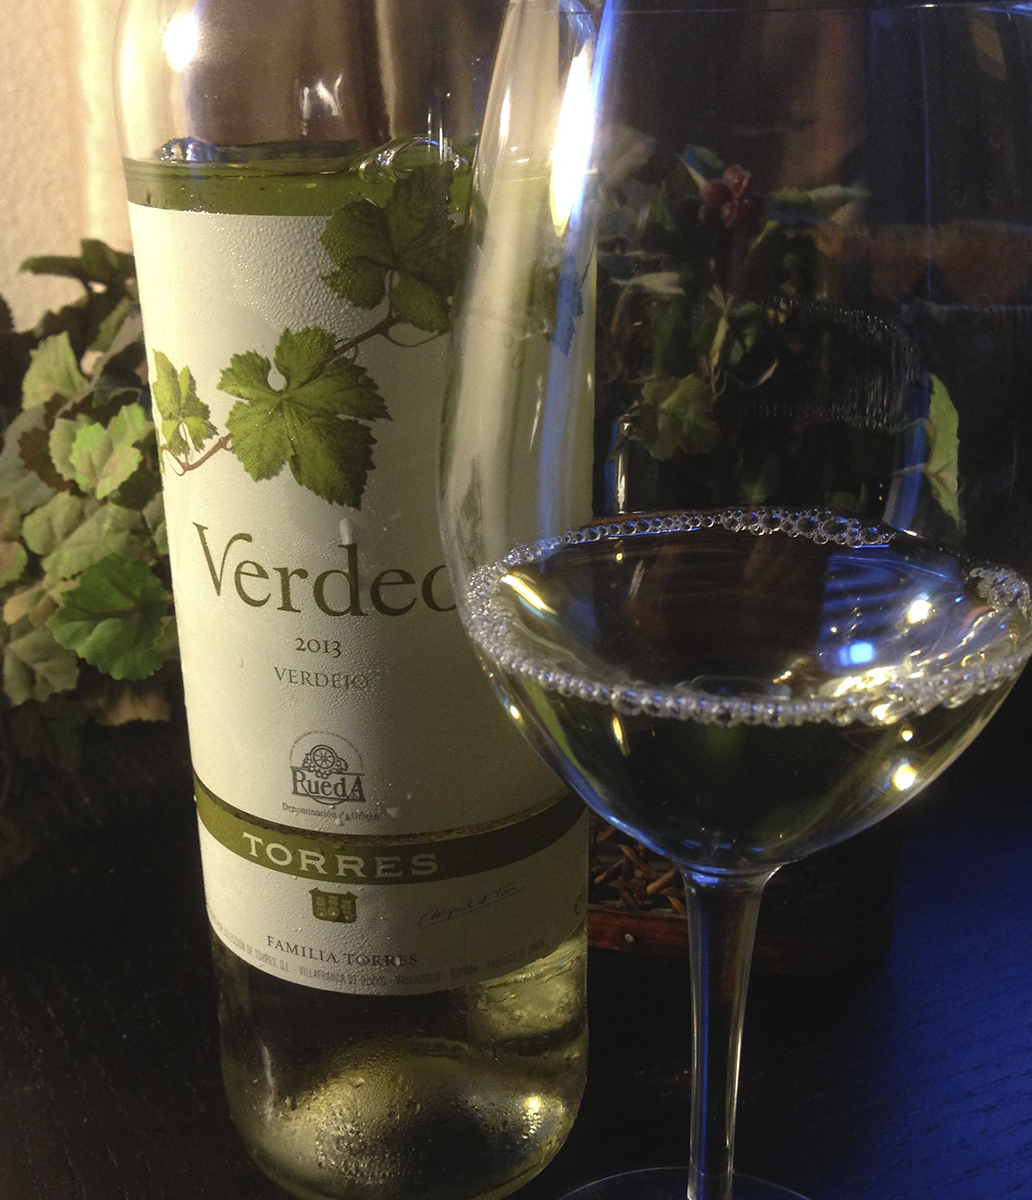 Today's Tasting Note: 2013 Verdeo from Torres